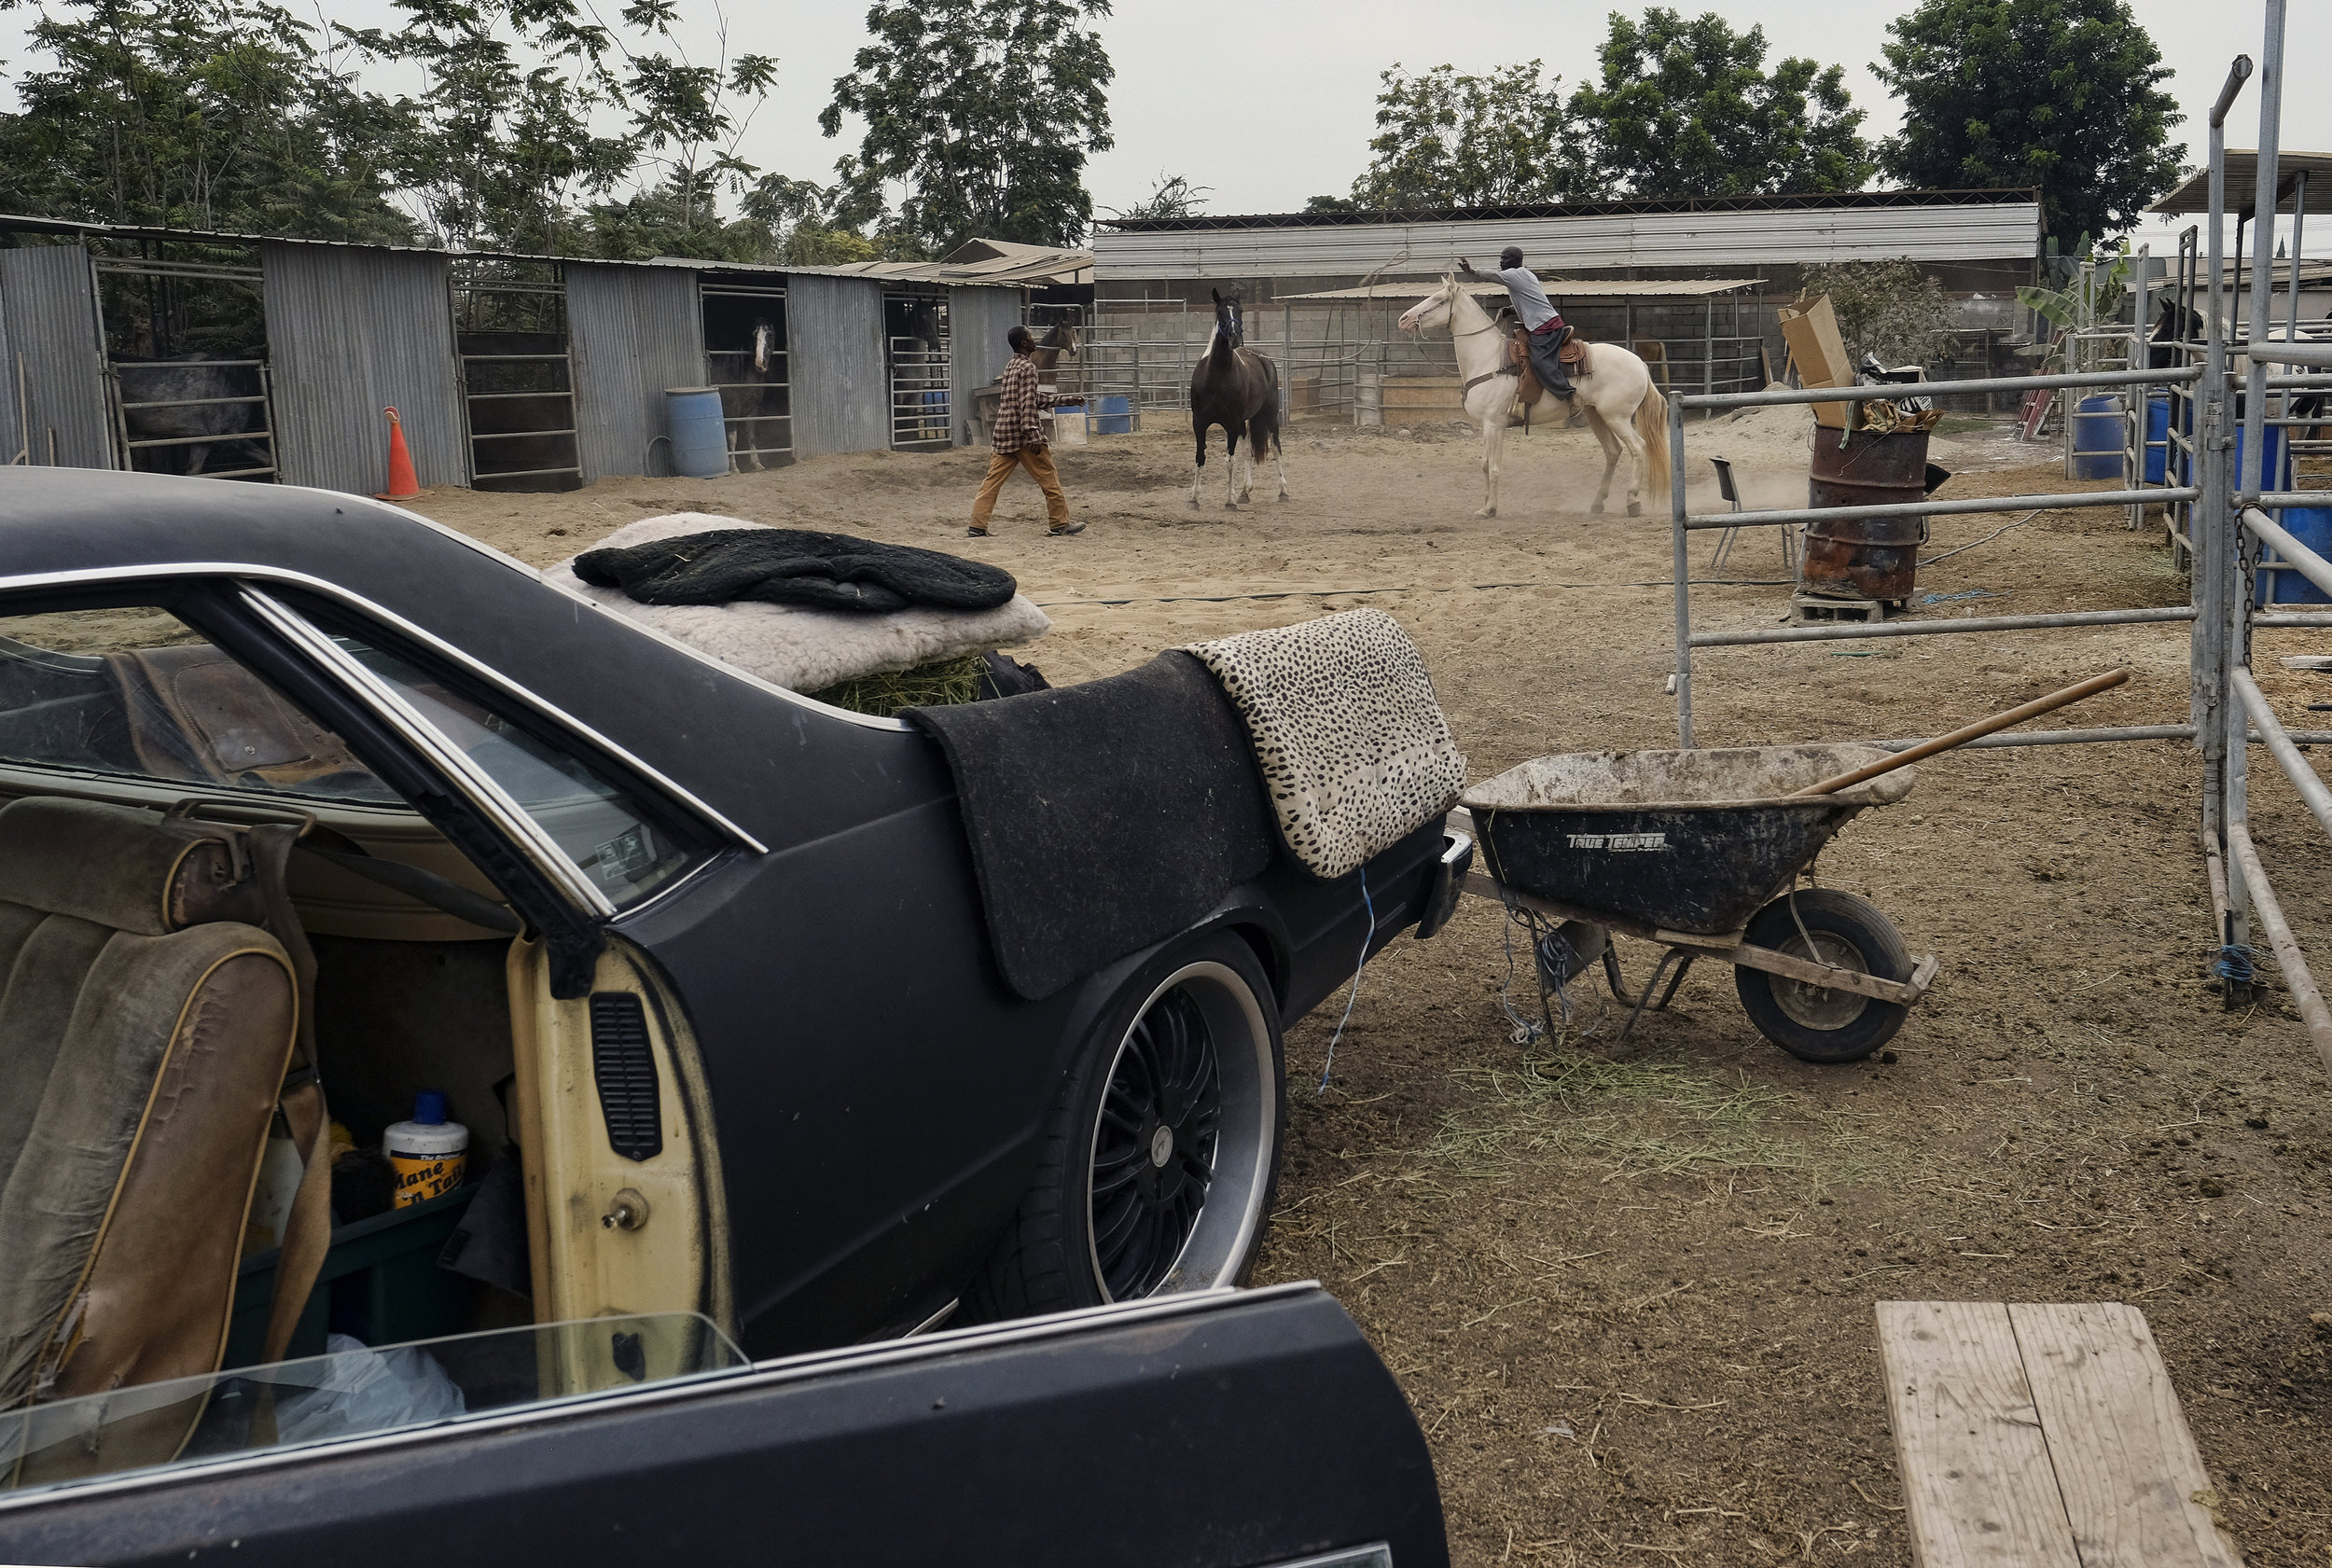 Ivory McCloud, right, and Mike Jones work with horses at their stable in the backyard of a house in Compton, Calif., on Sunday, Aug. 7, 2016. Hundreds of people keep horses in backyards in this agriculturally-zoned Richland Farms neighborhood and ride them on the streets around town, as well as at rodeos and other equestrian competitions across the country. (AP Photo/Richard Vogel)